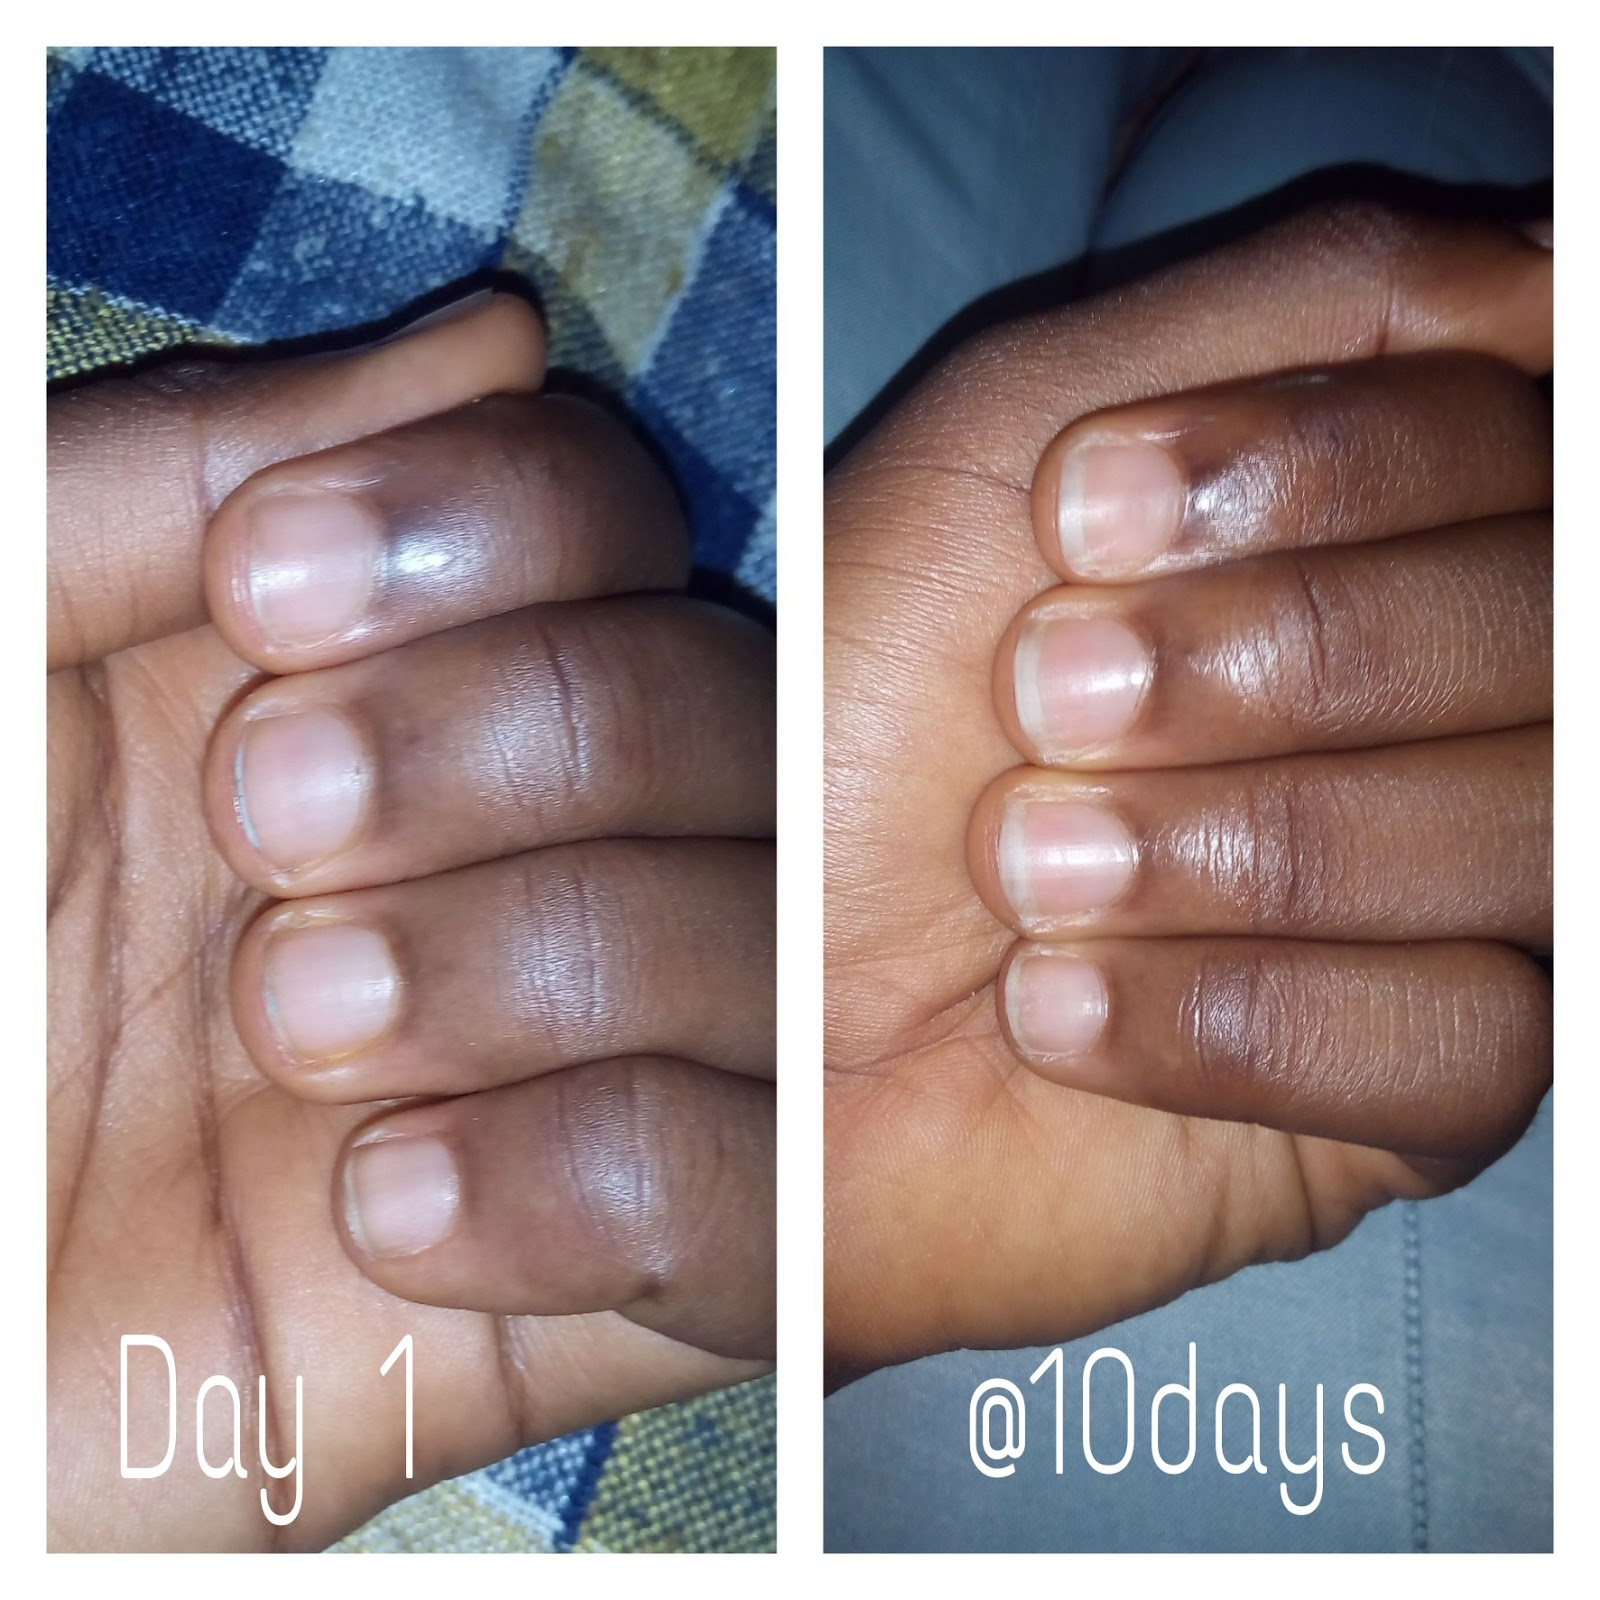 My nails after growing 6 month 6